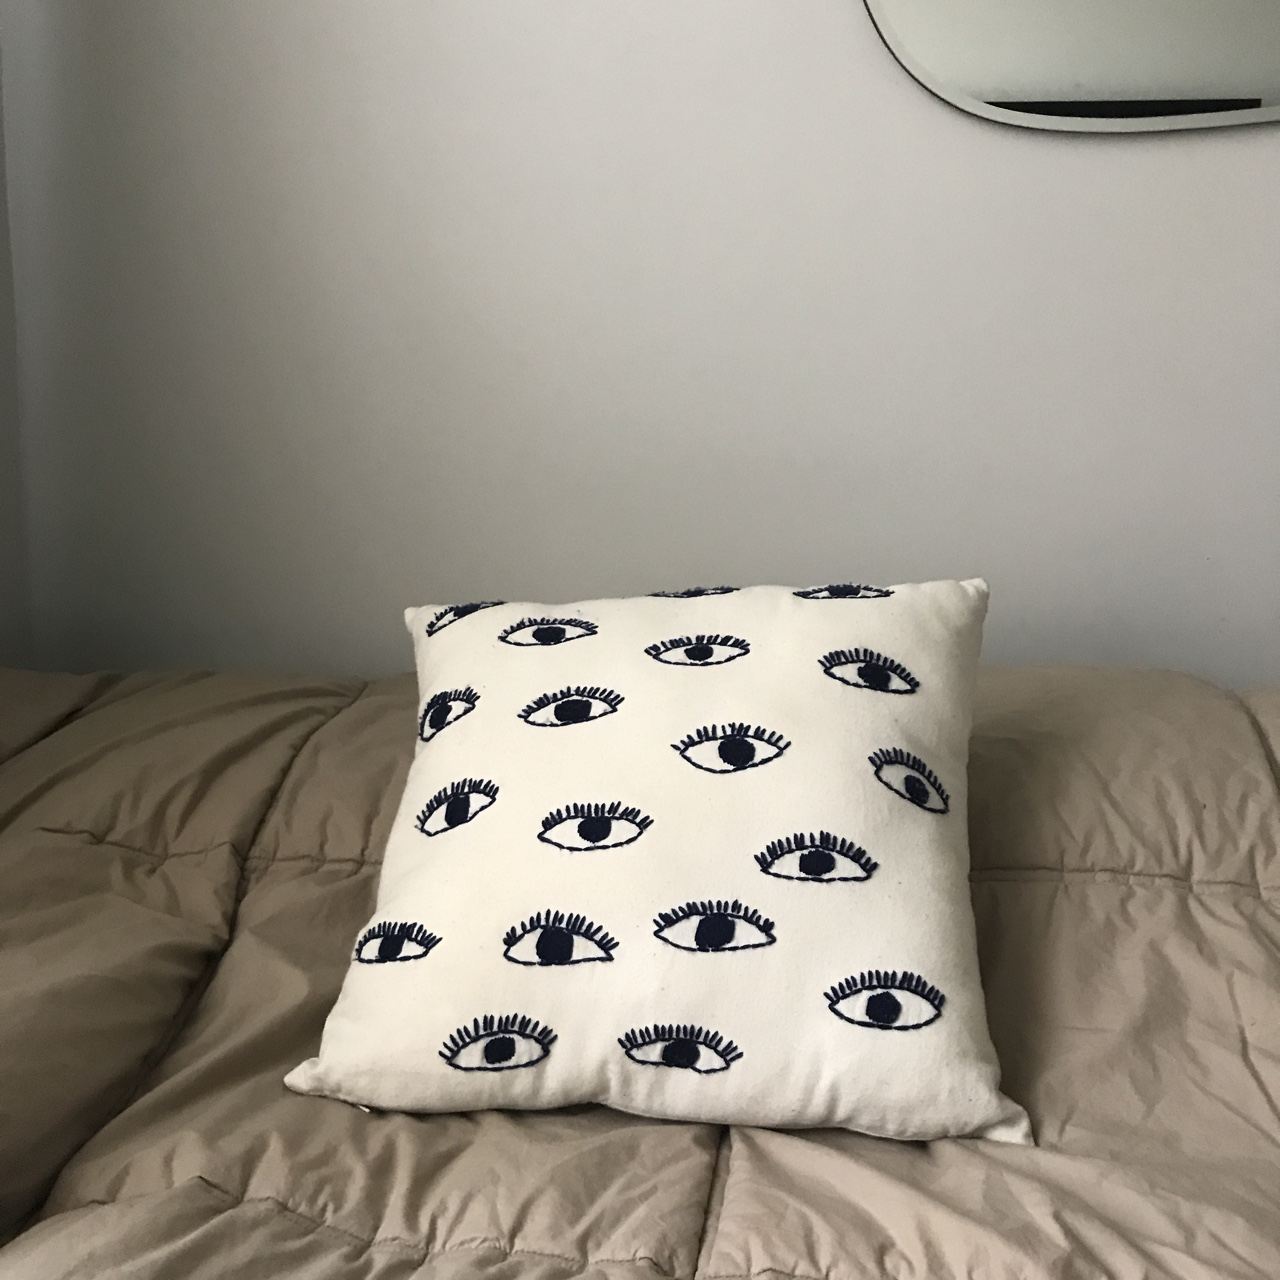 urban outfitters eye pillow case one side has